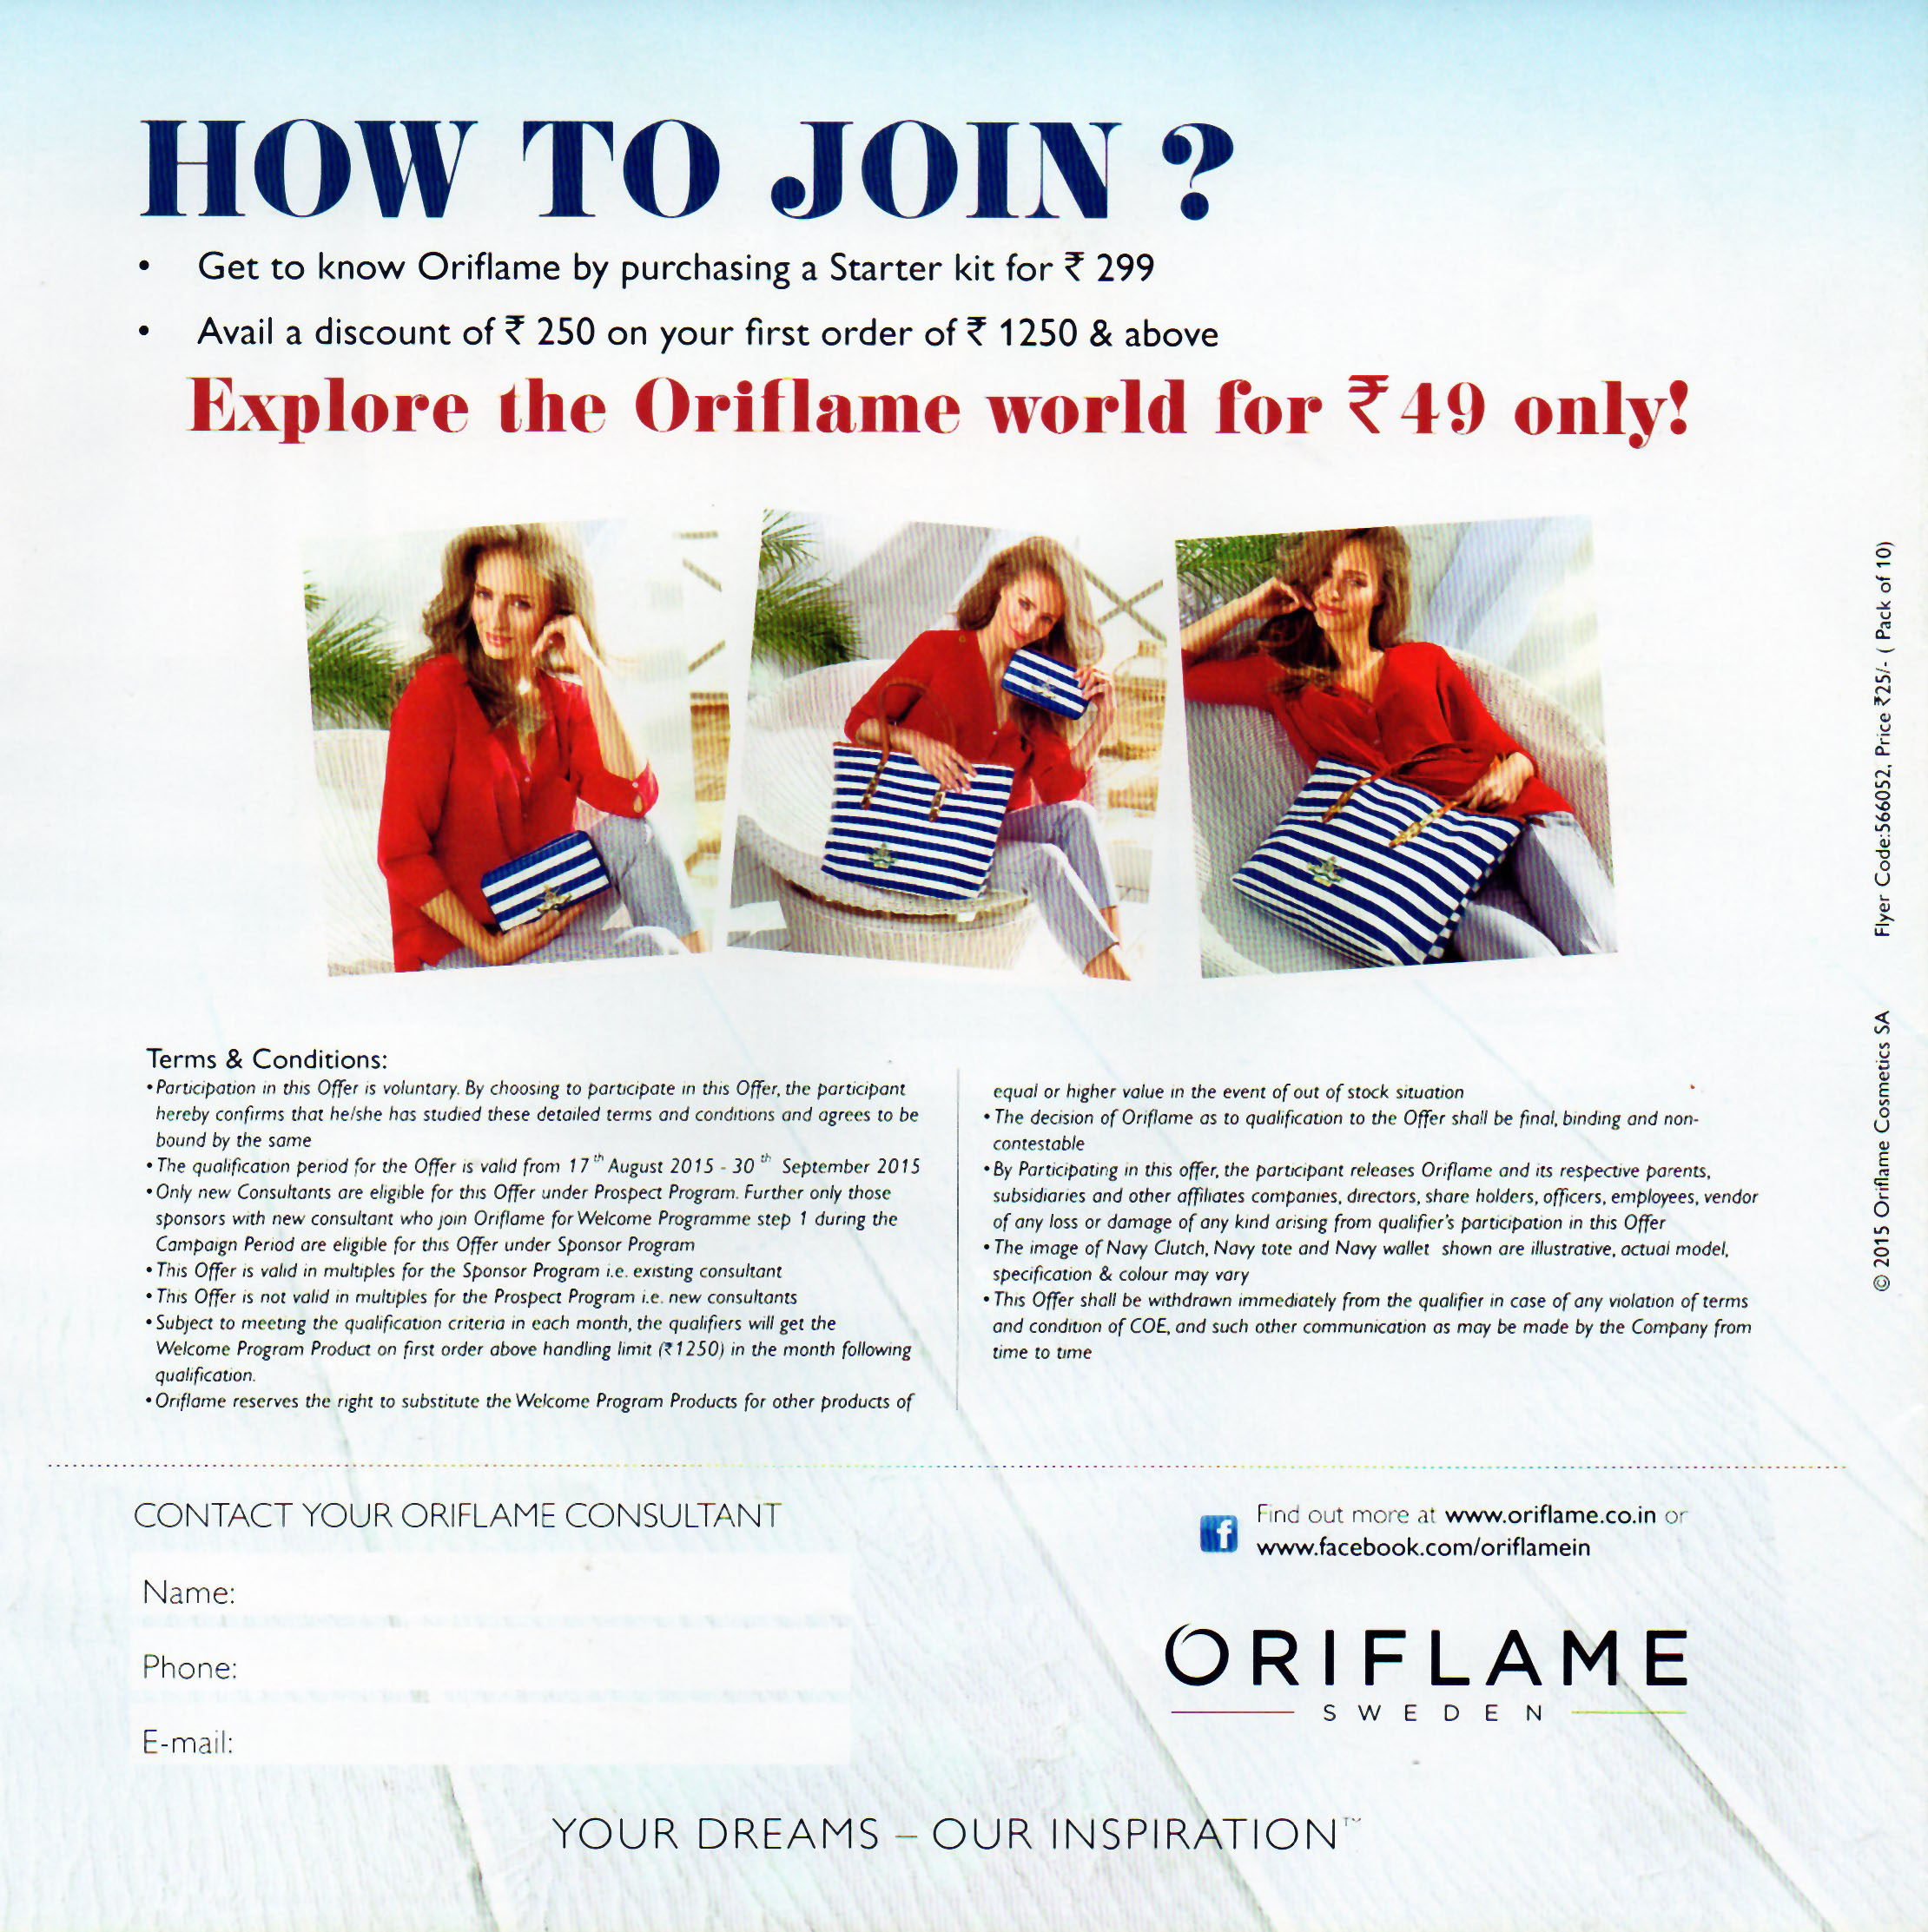 Oriflame Beauty Consultant